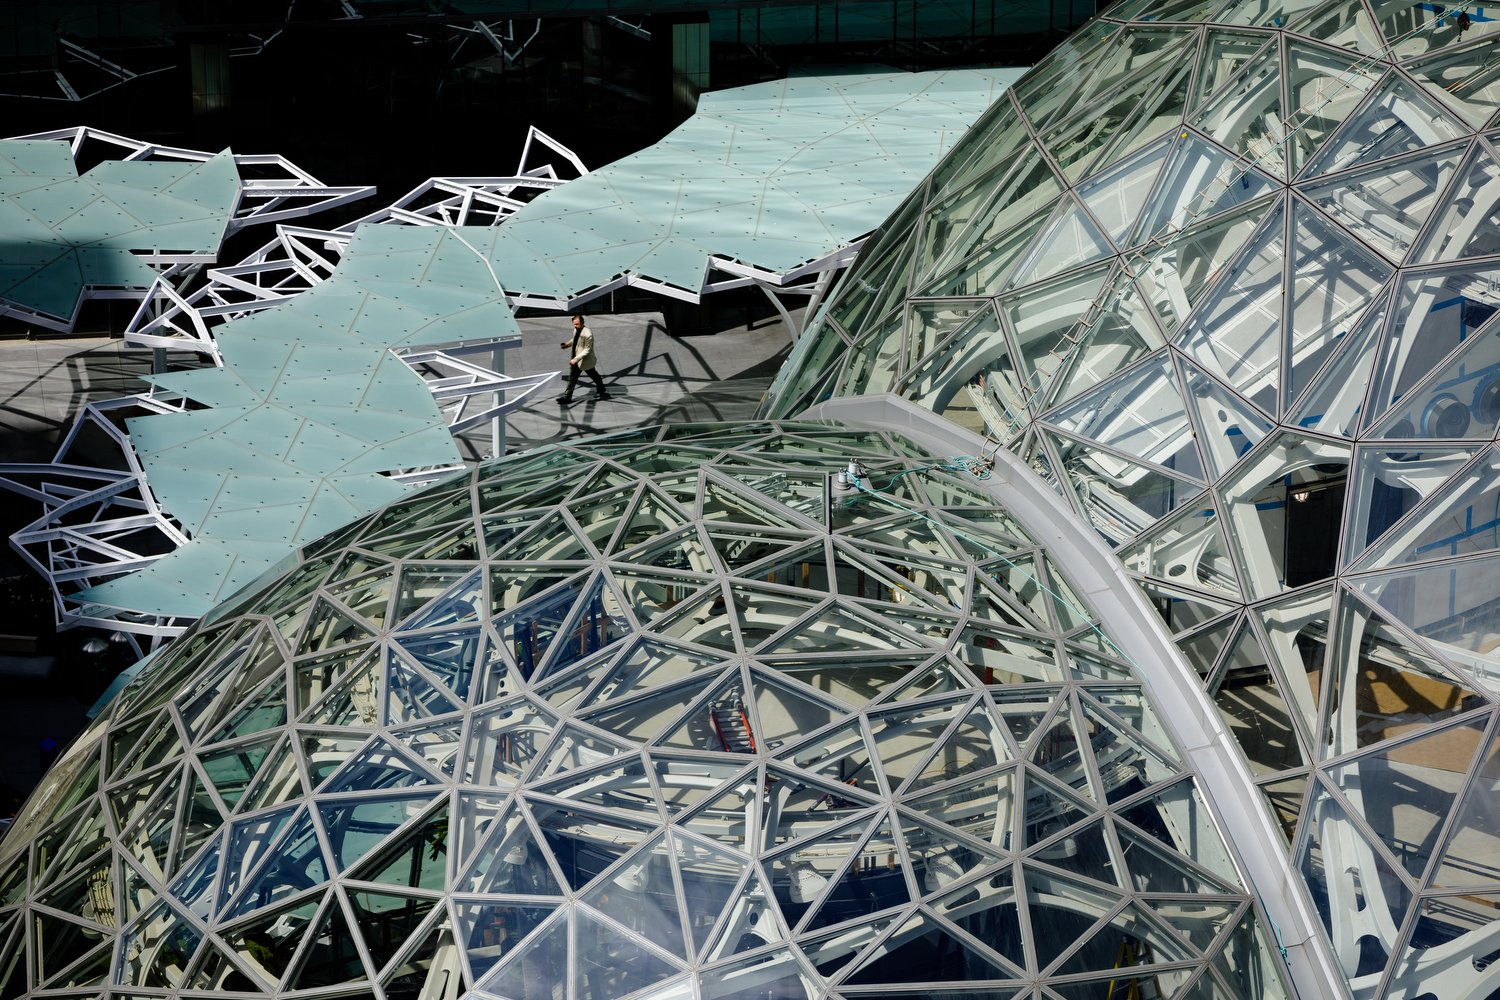 Exterior, Dome RoofLine, and Glass Siding Material Design computation helped to generate the spheres, each a pentagonal hexecontahedron formed by tessellating a pentagon across its surface. Algorithms enabled the team to quickly generate a steel-and-glass structure that could be constructed efficiently and cost-effectively.  Photo 6 of 9 in Meet Downtown Seattle's Newest Landmark: The Amazon Spheres